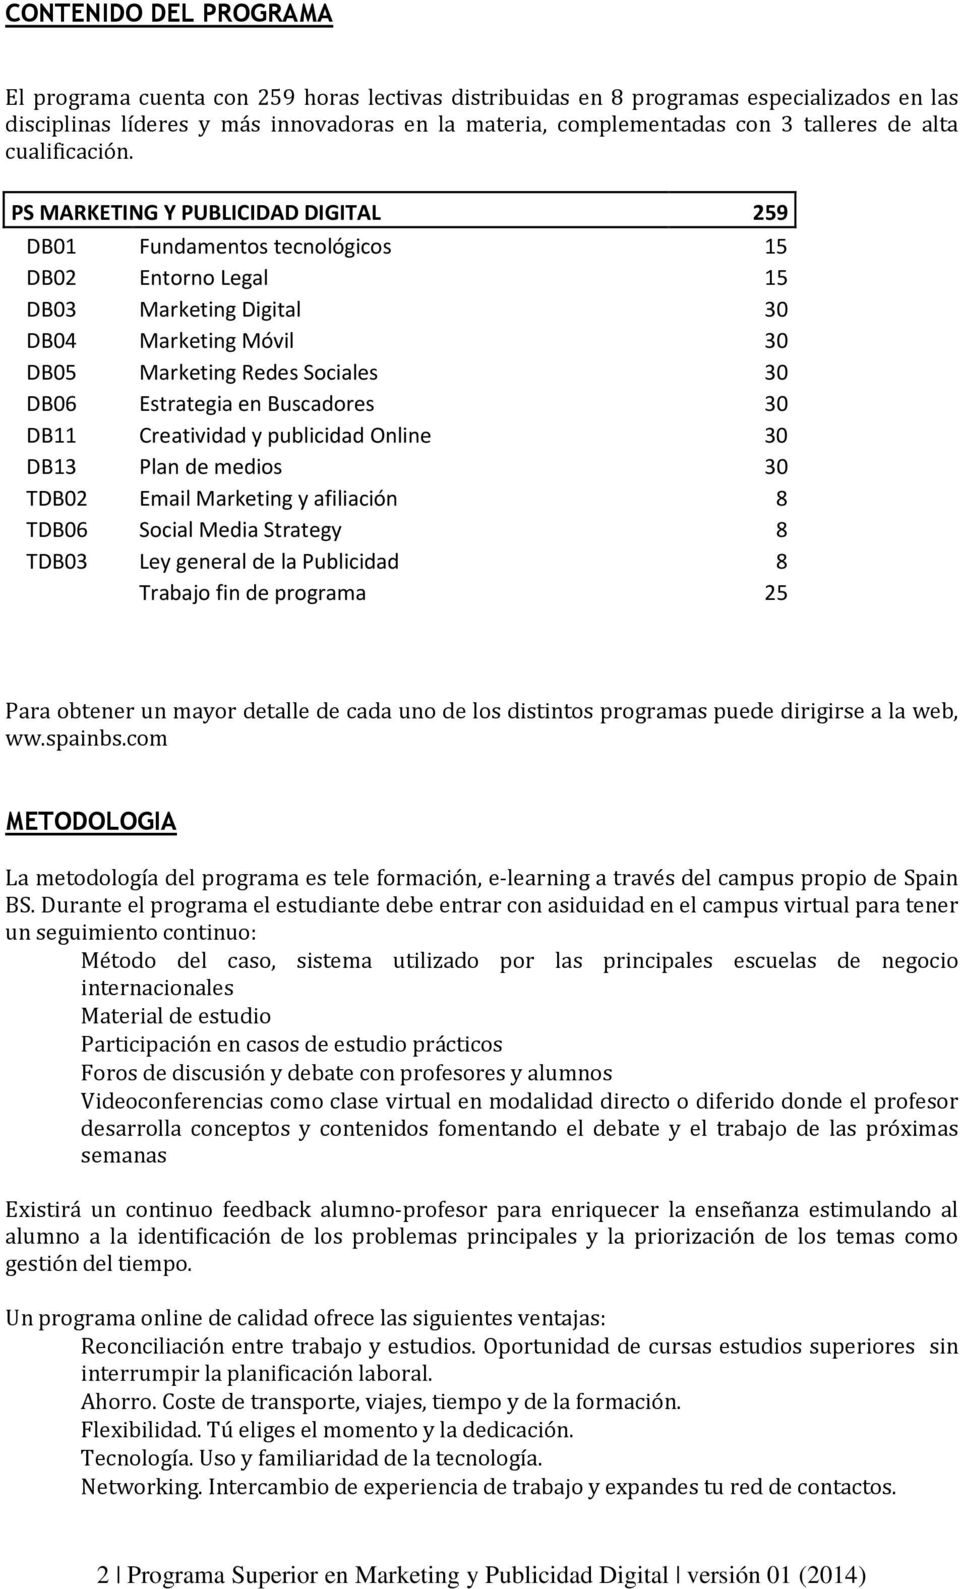 PS MARKETING Y PUBLICIDAD DIGITAL 259 DB01 Fundamentos tecnológicos 15 DB02 Entorno Legal 15 DB03 Marketing Digital 30 DB04 Marketing Móvil 30 DB05 Marketing Redes Sociales 30 DB06 Estrategia en